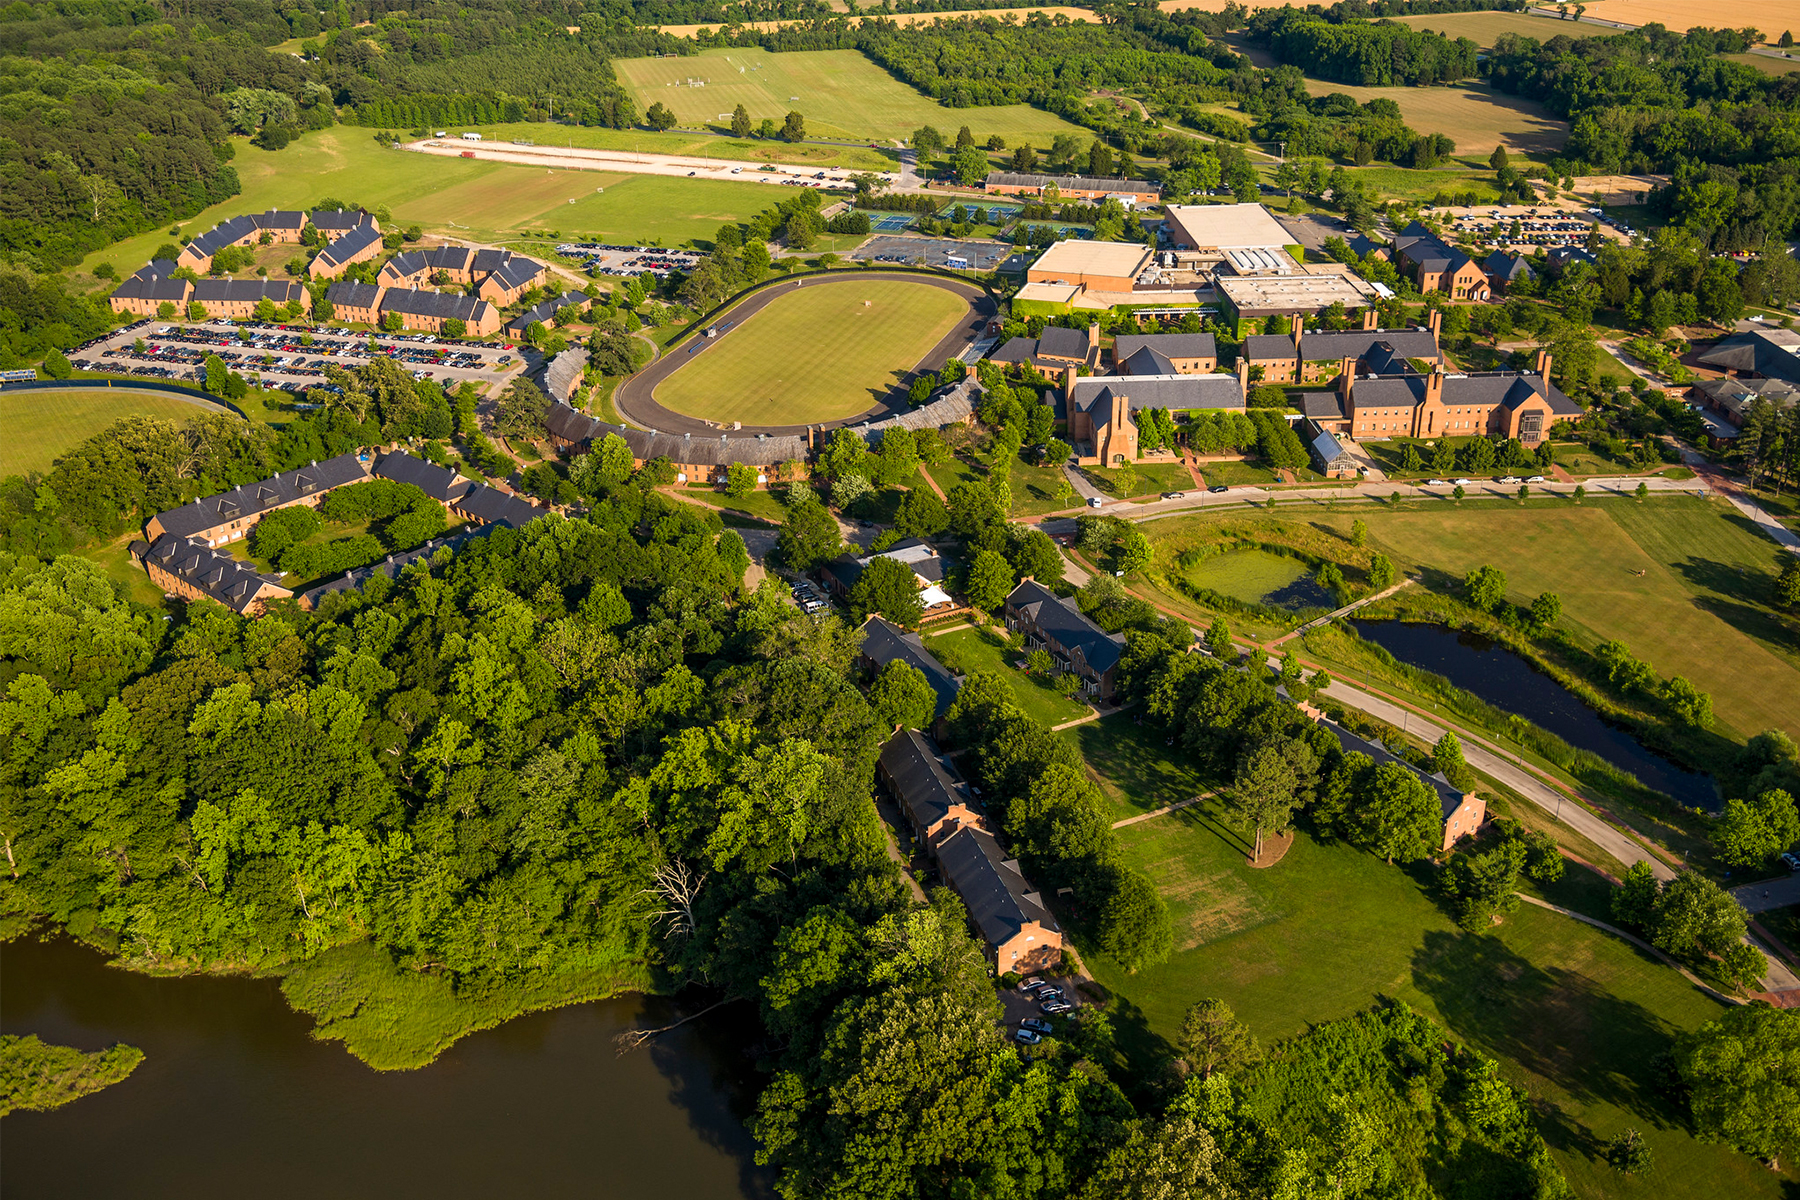 Above view of St. Mary's College of Maryland campus.